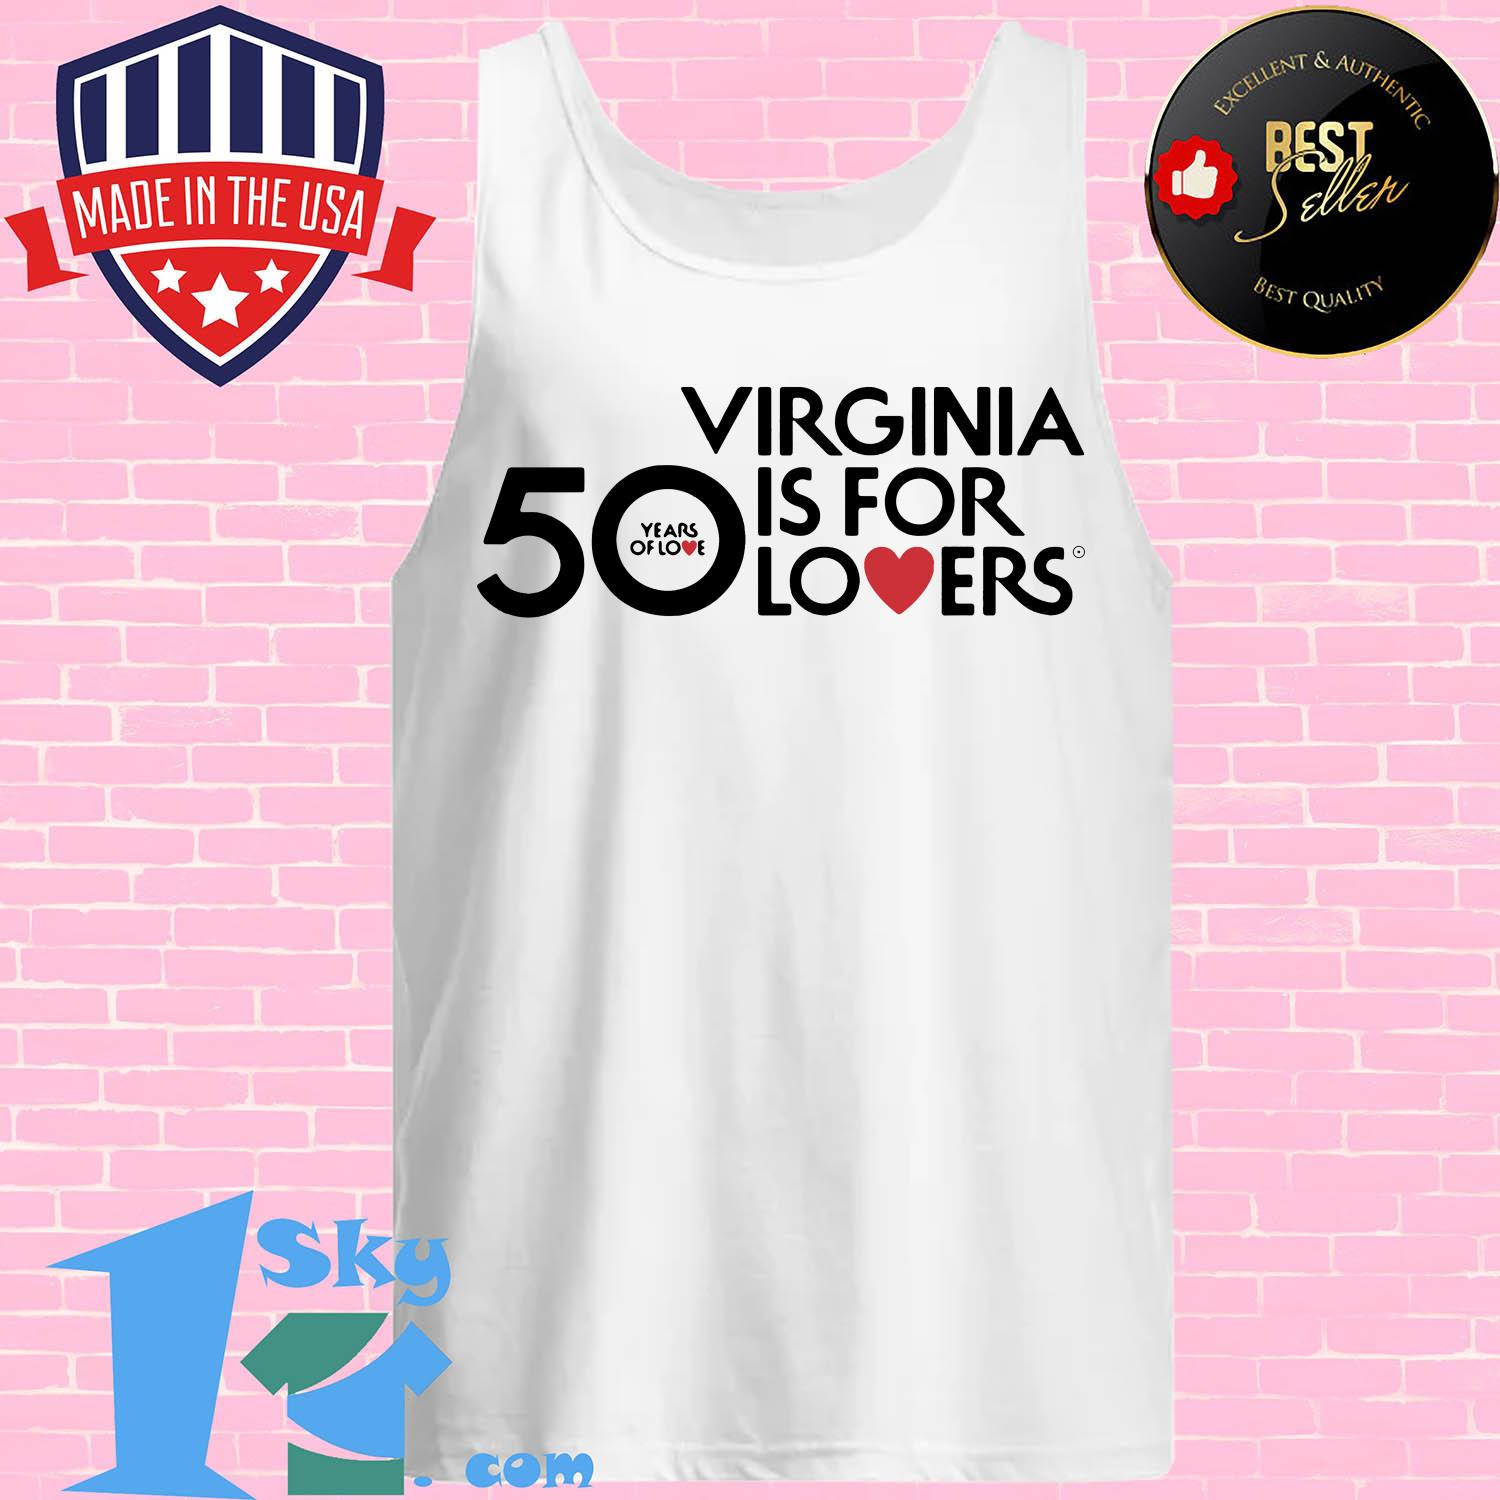 50 years of love virginia is for lovers tank top - 50 Years Of Love Virginia Is For Lovers shirt